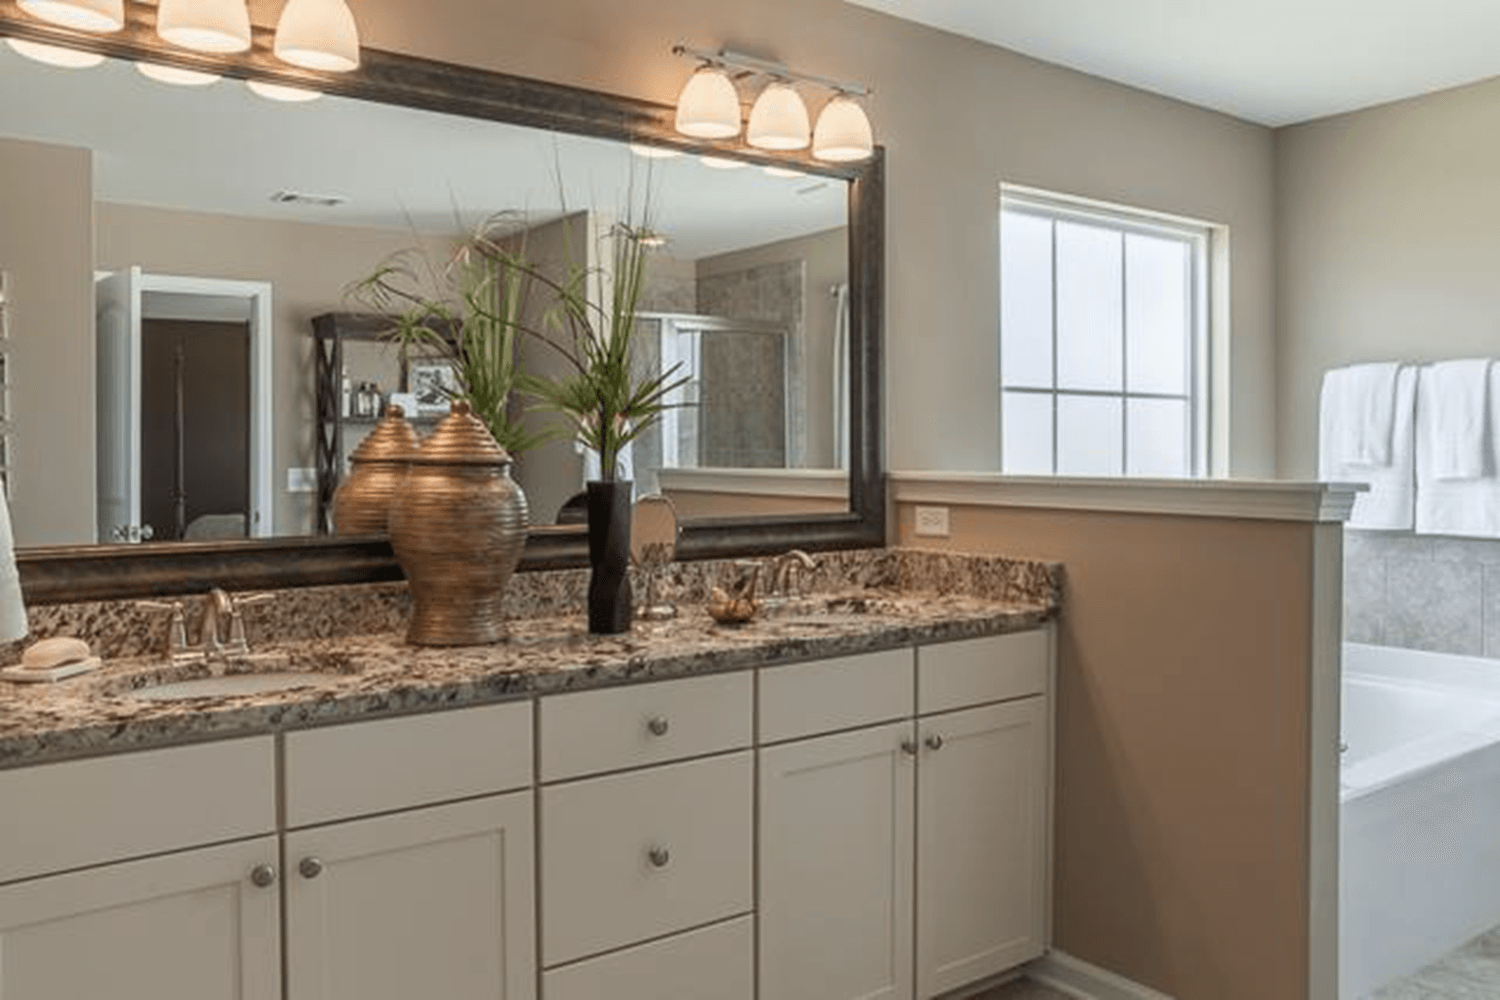 Bathroom featured in The Savannah (Build on your lot) By Lamar Smith Homes in Savannah, GA